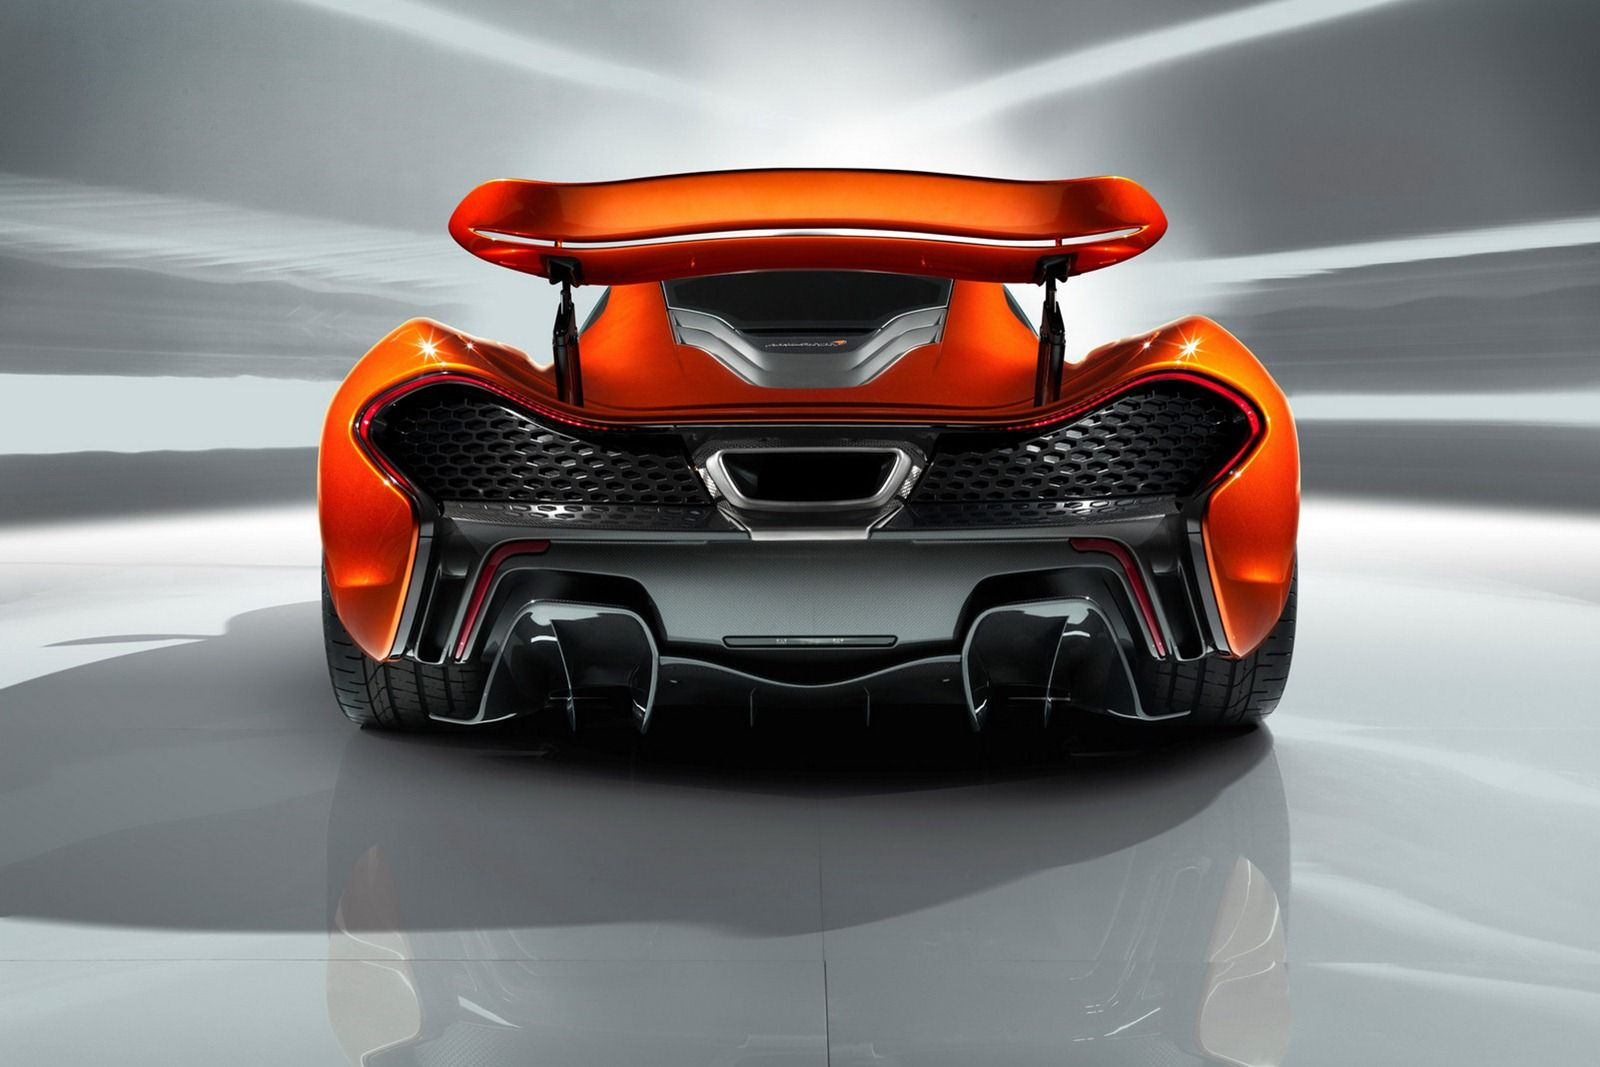 New Photo Gallery Offers A Better Look At Mclaren S P1 Hypercar